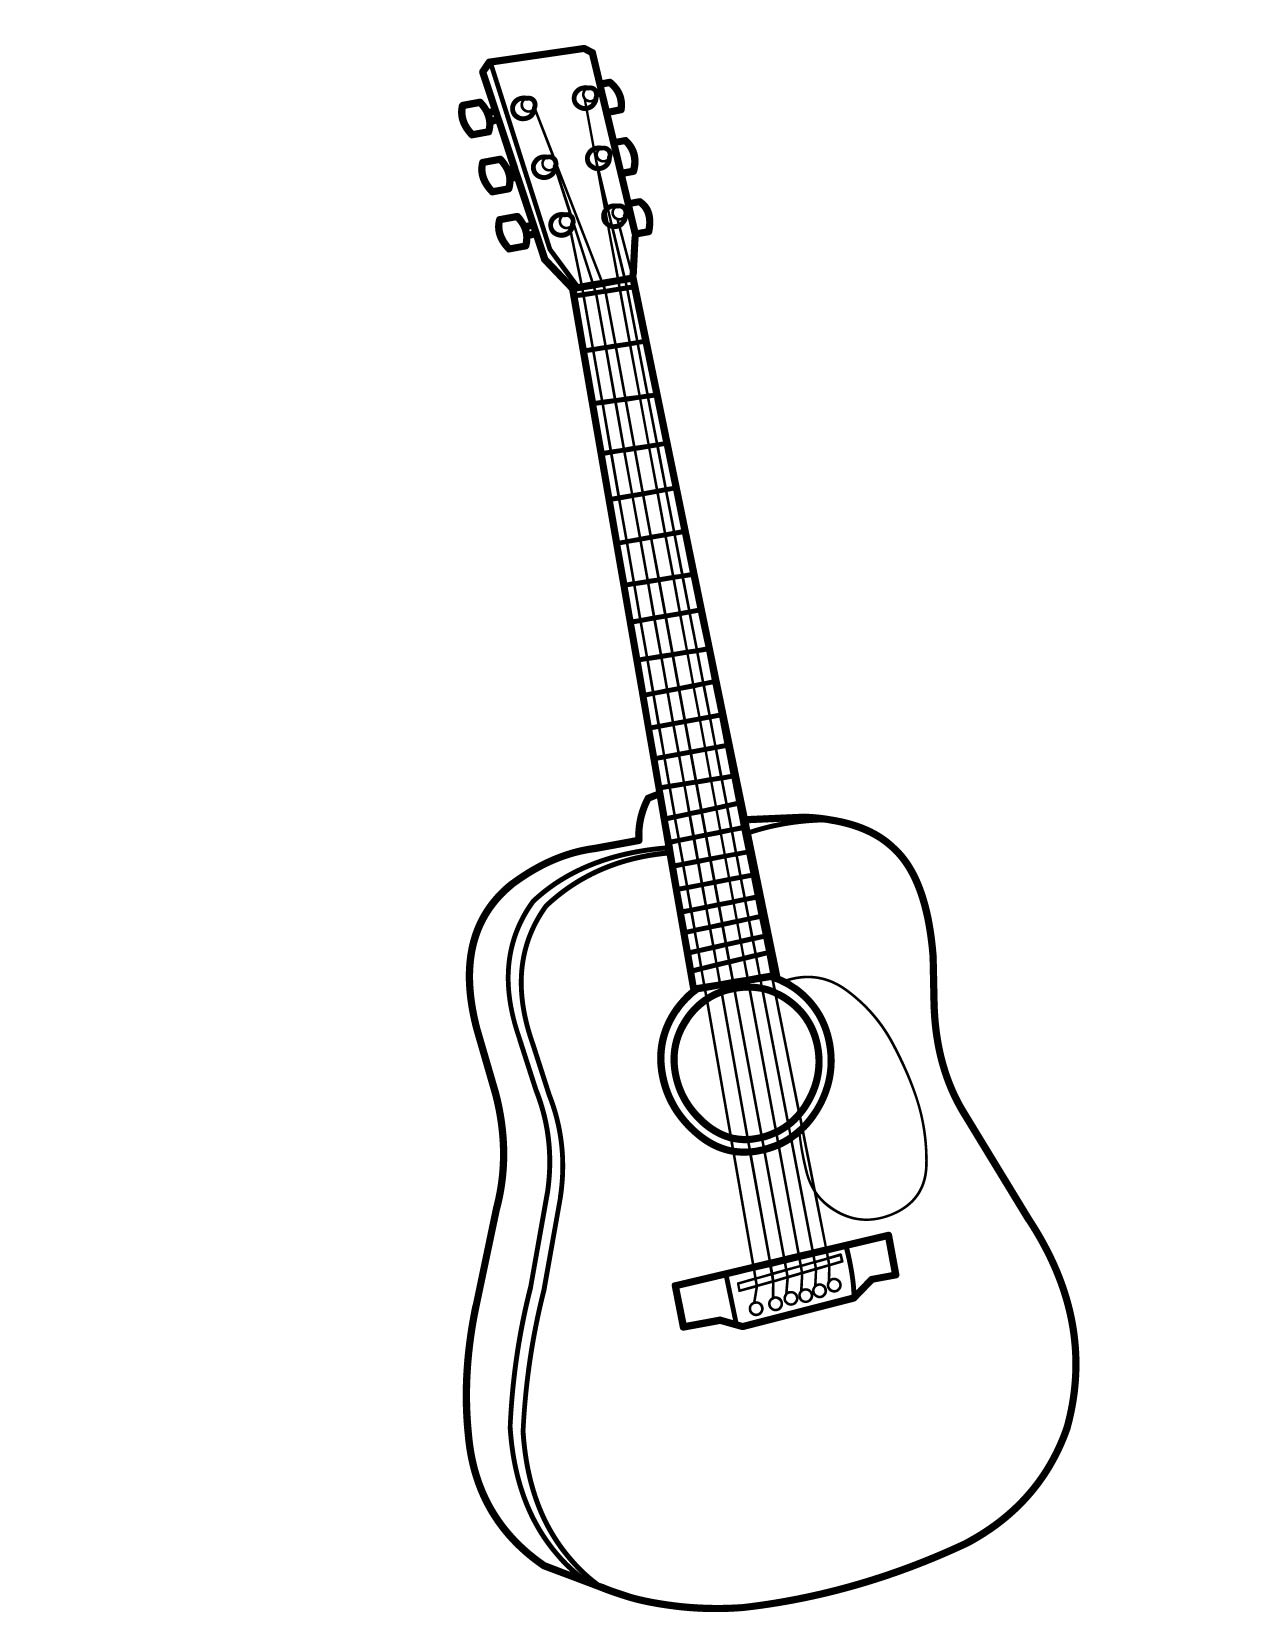 Free coloring pages instruments - Musical Instruments Coloring Pages